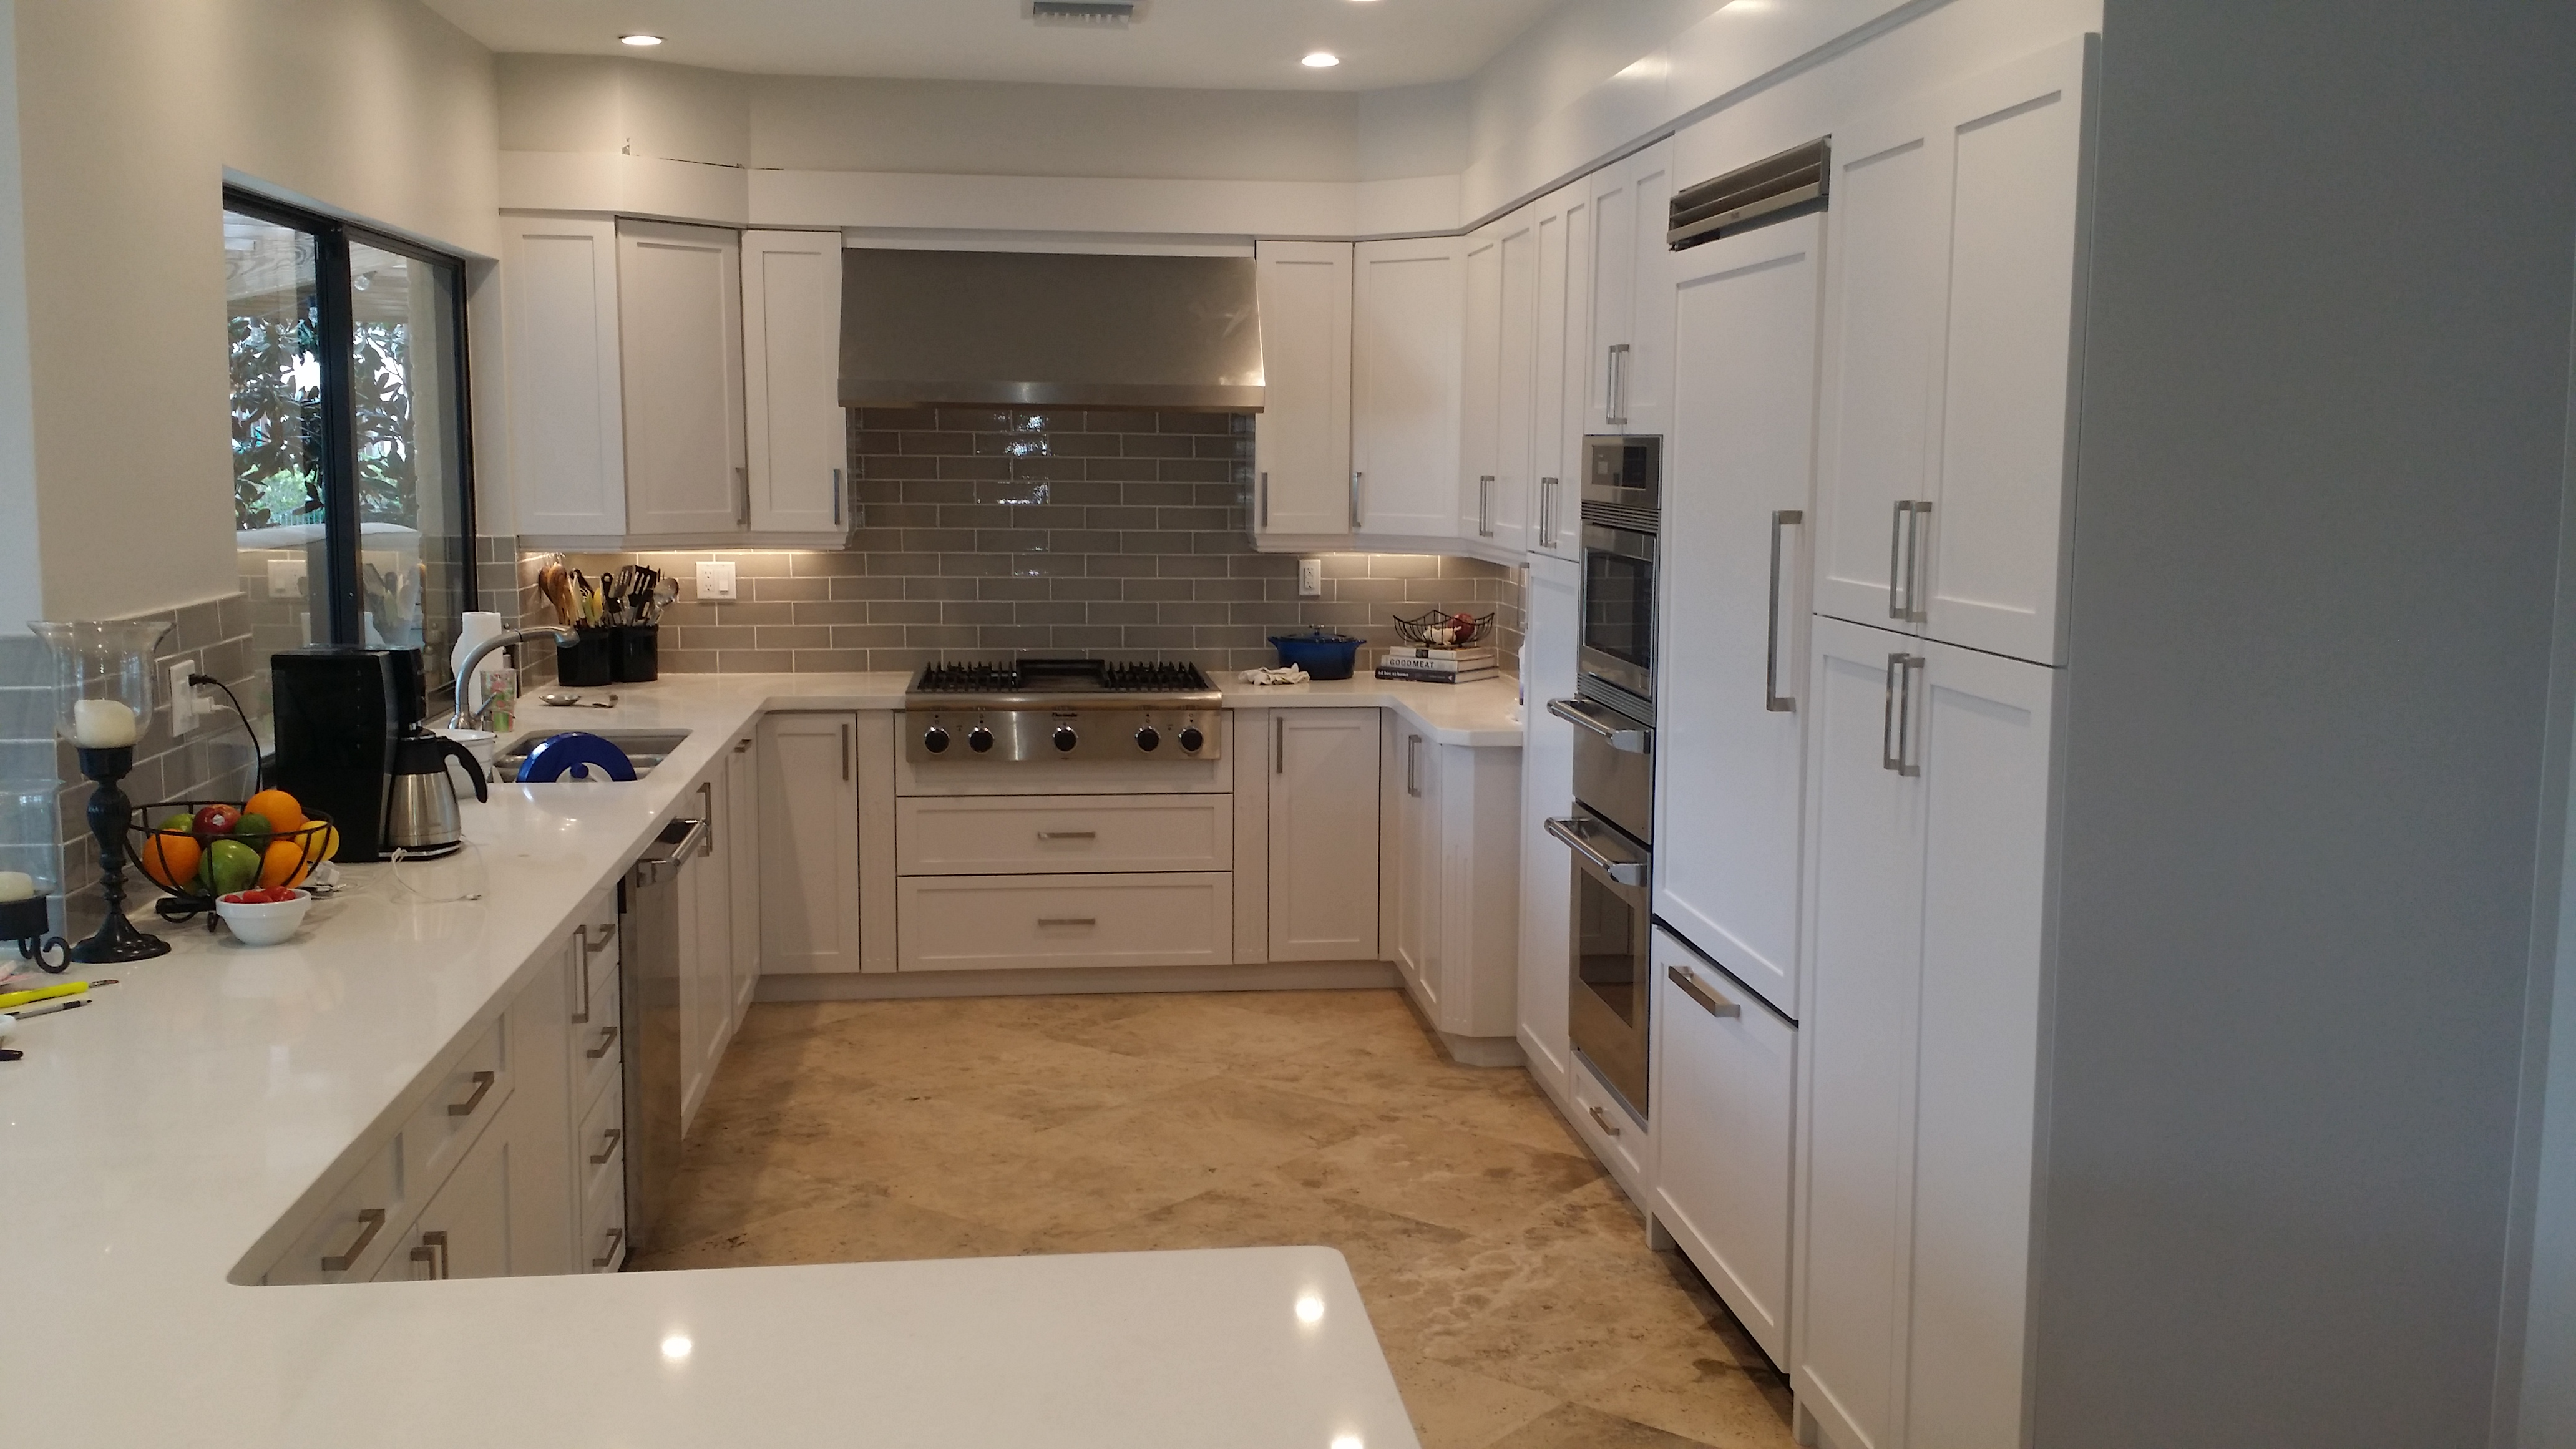 Uncategorized Kitchen Cabinets Miami kitchen cabinets gallery new style corp white modern custom cabinet design installation miami florida usa